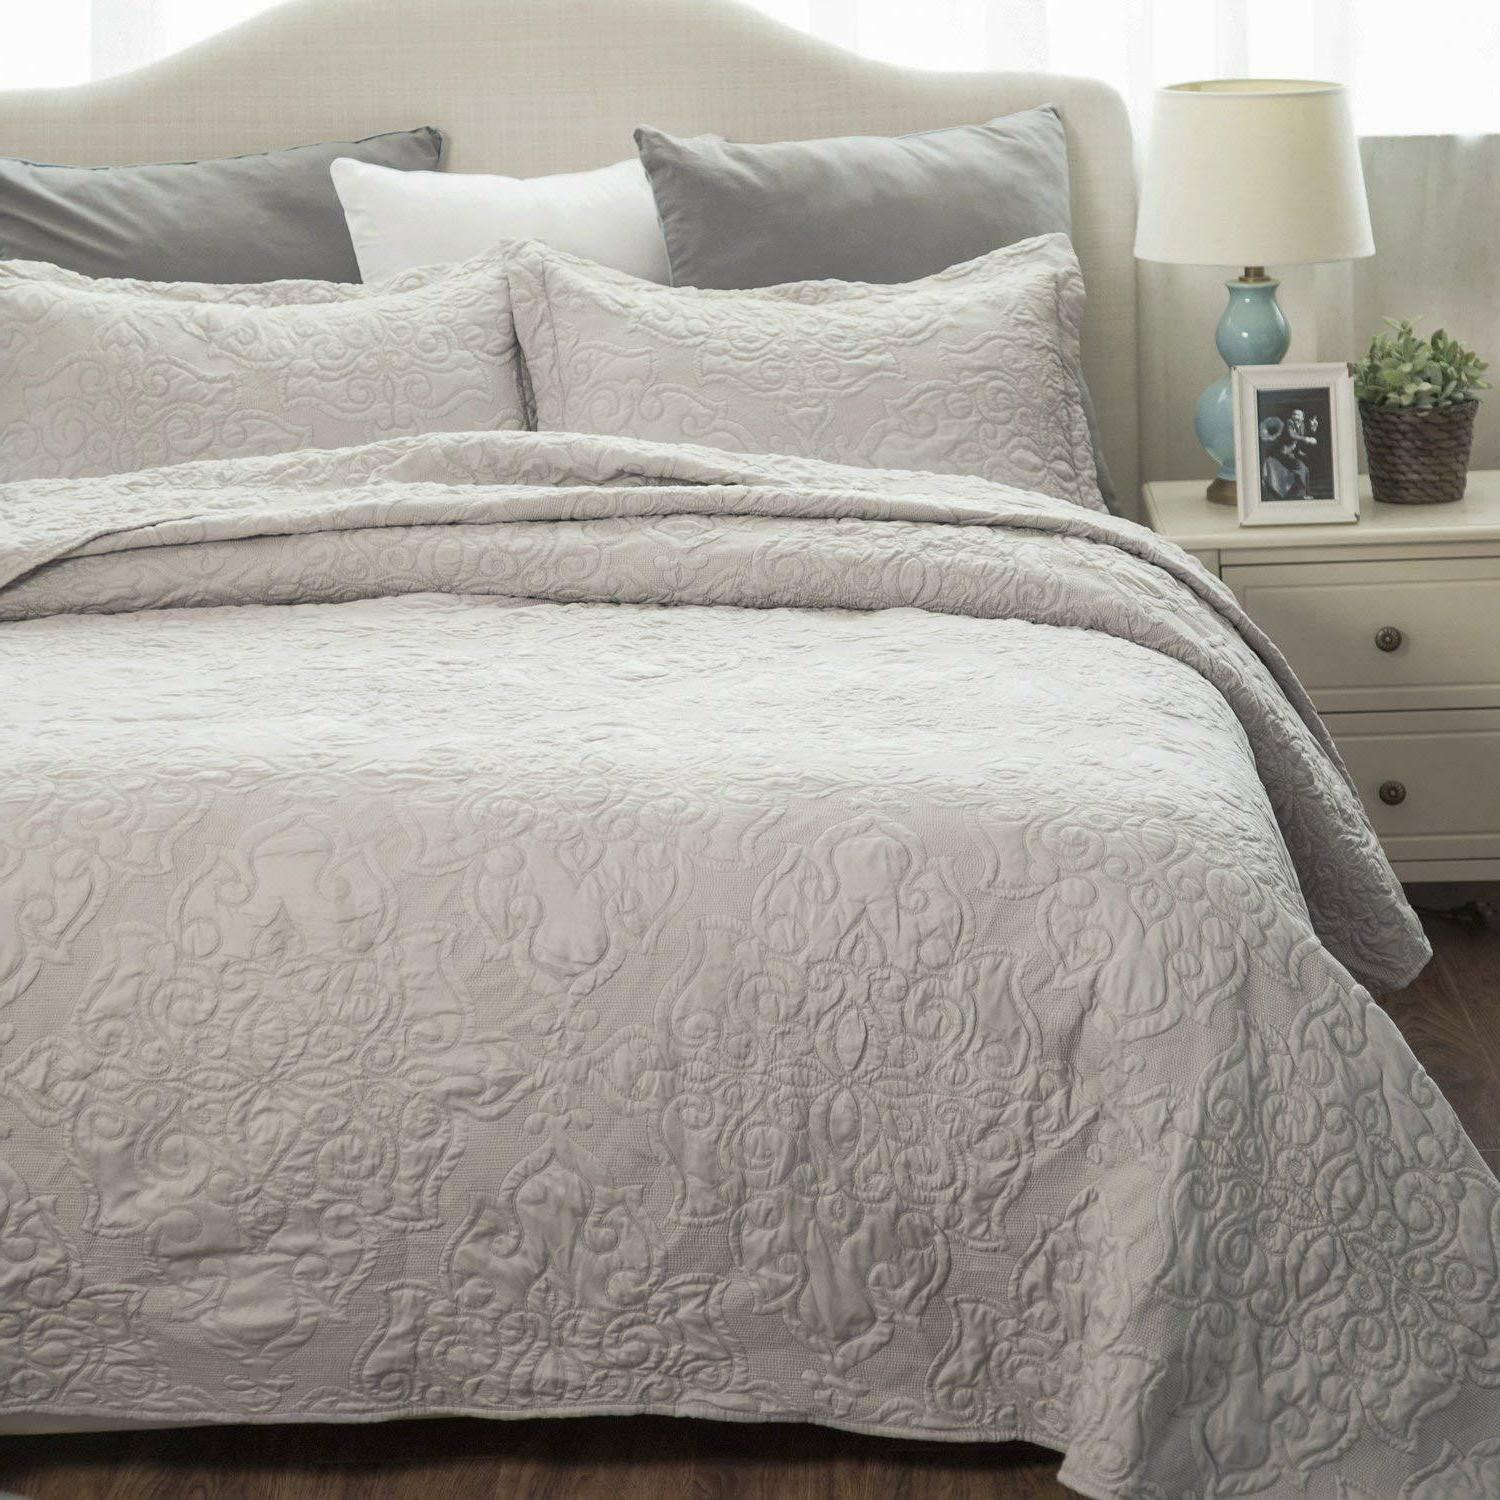 Bedsure Comfy Bedding Quilt Embroidered Full/Queen Set